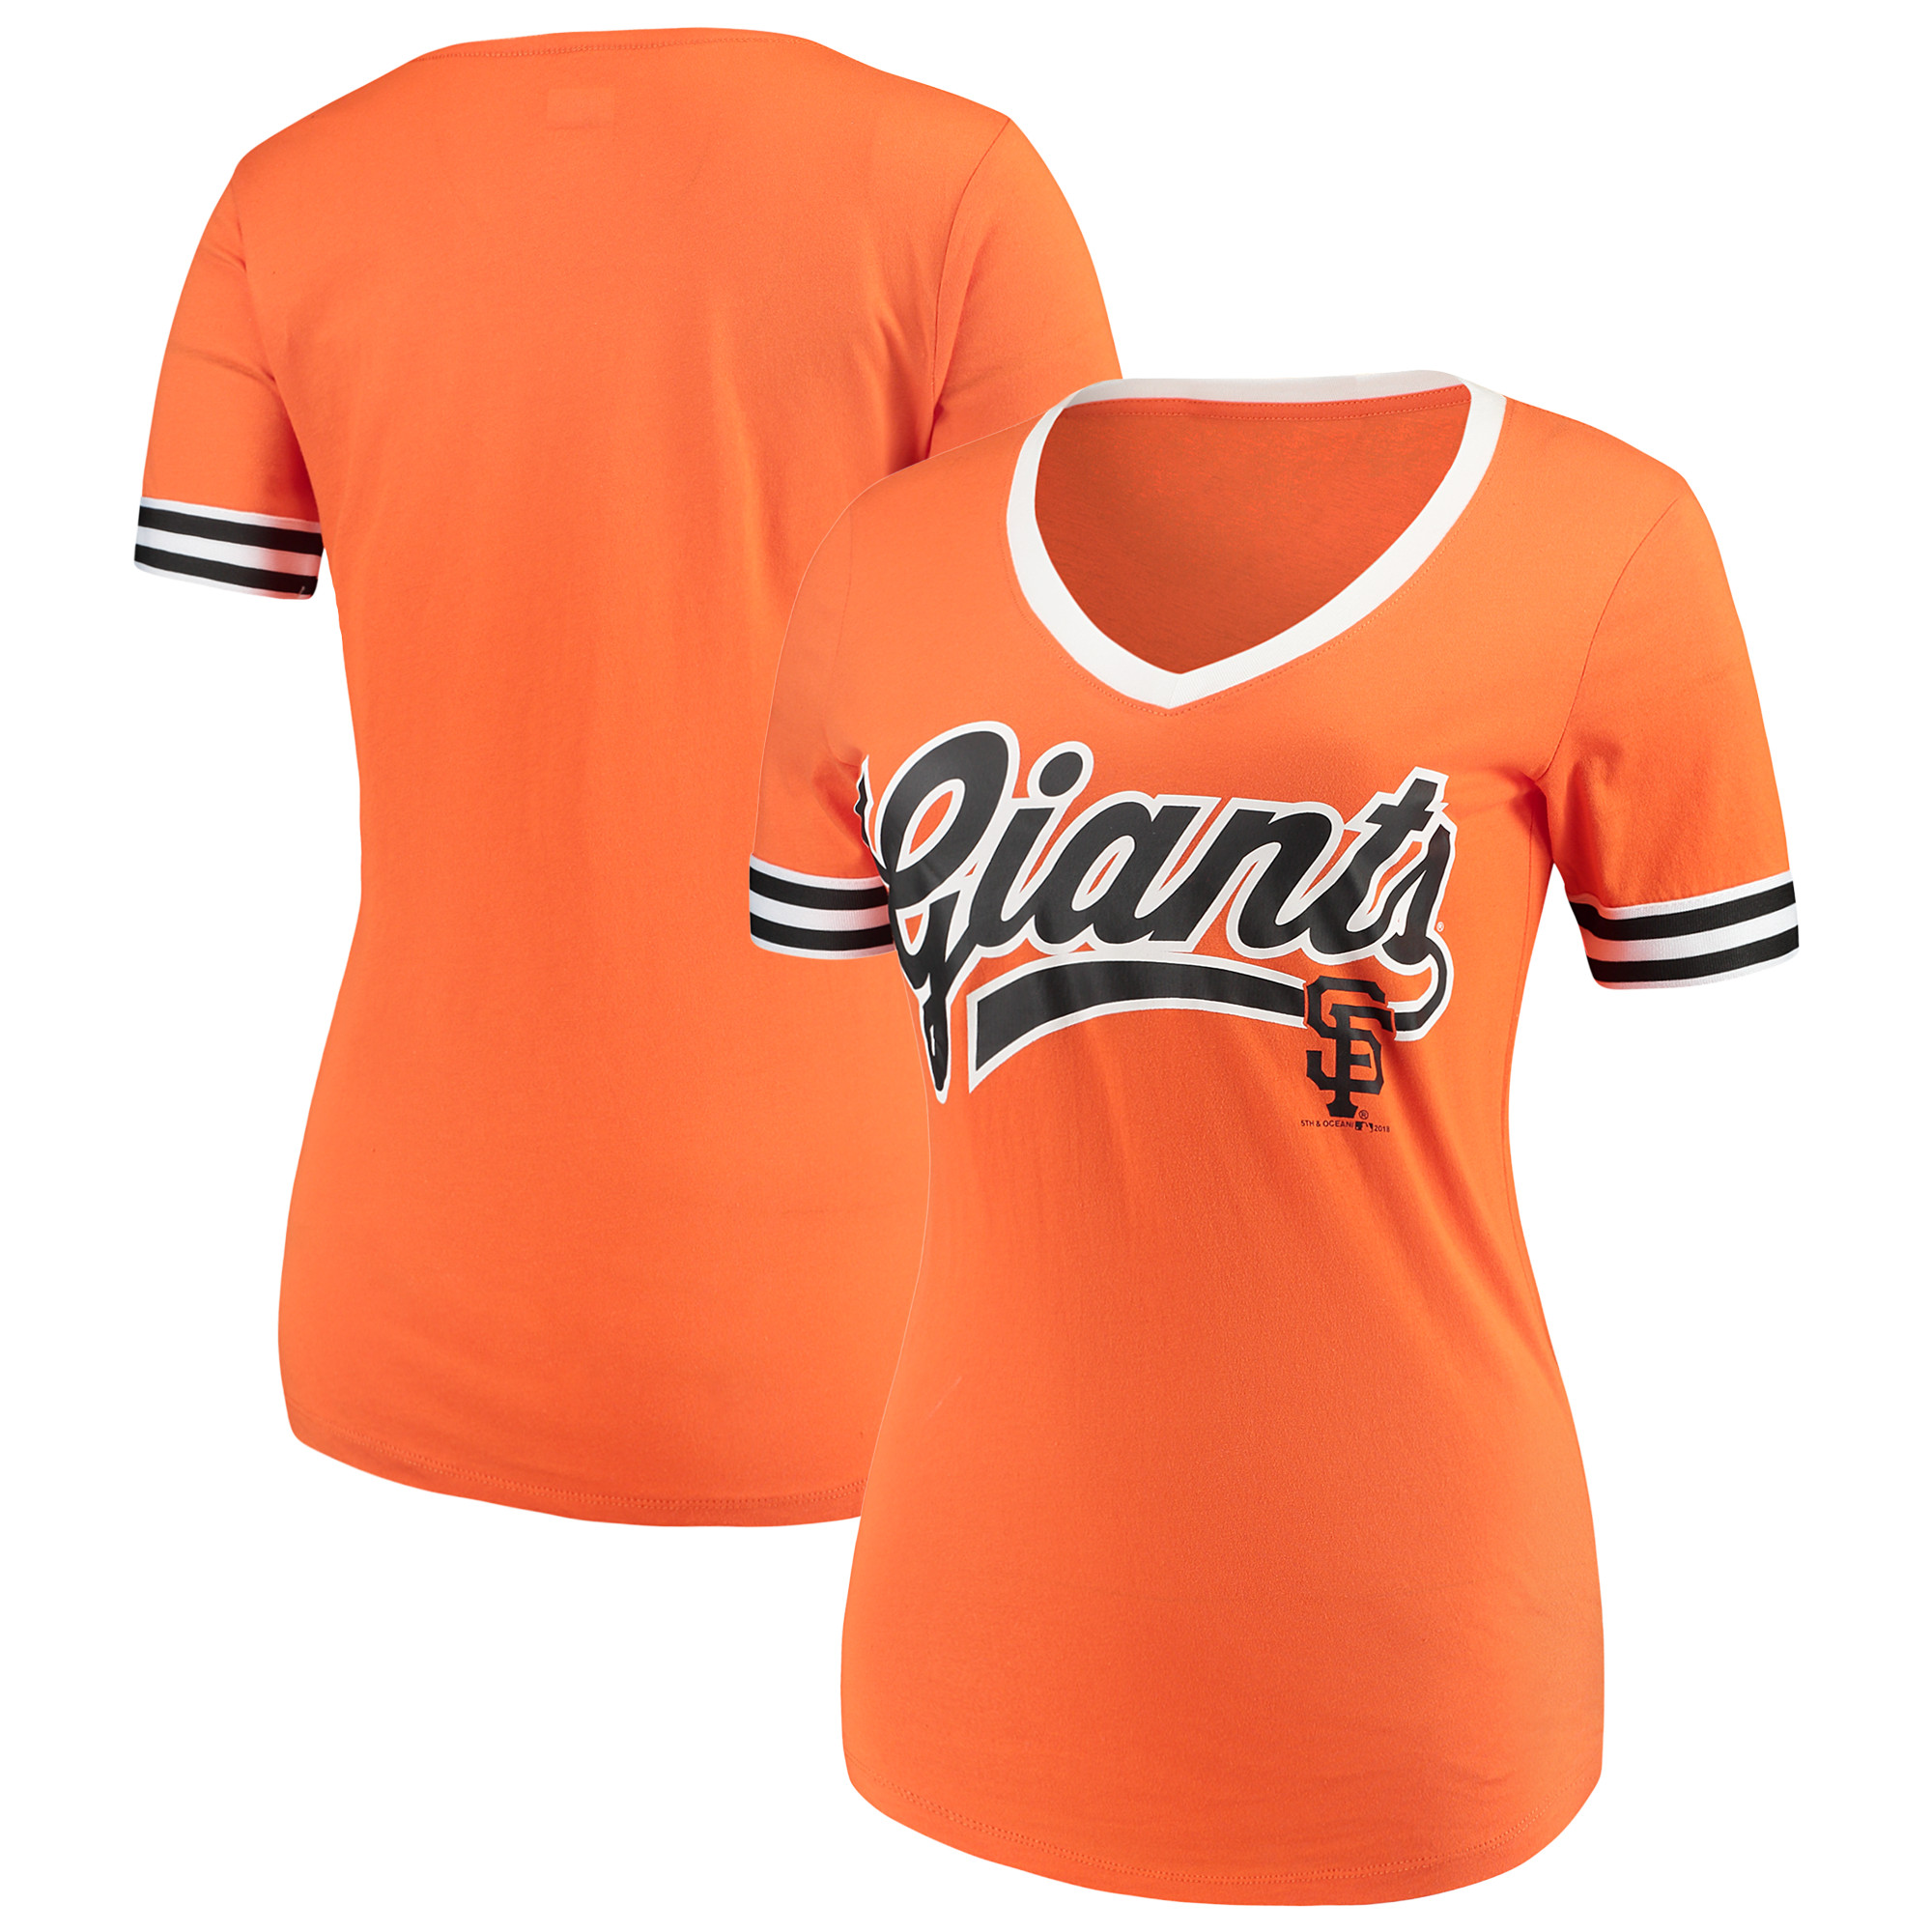 San Francisco Giants 5th & Ocean by New Era Women's Baby Jersey Contrast Sleeve T-Shirt - Orange